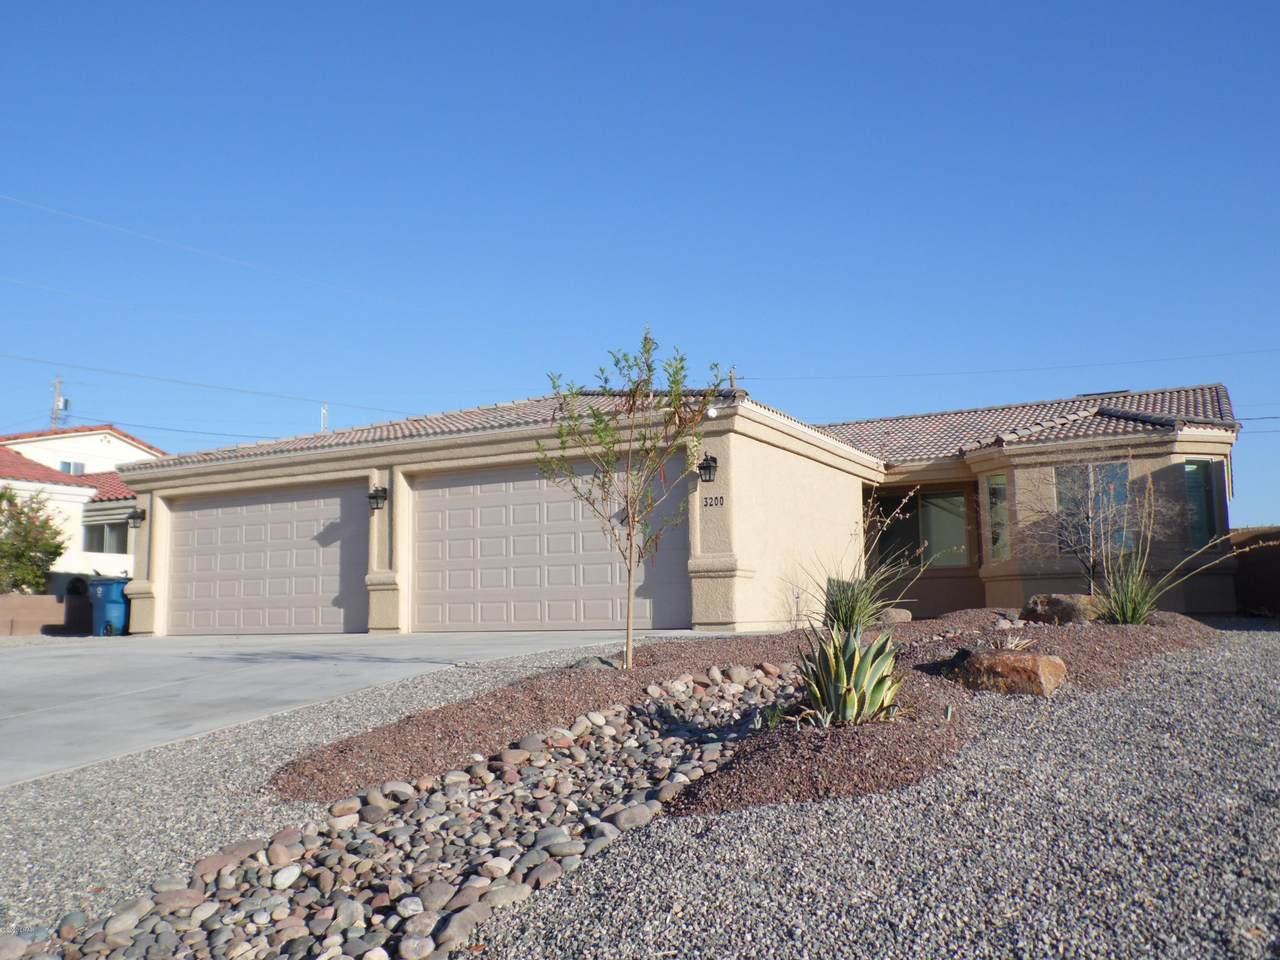 3200 Chemehuevi Blvd - Photo 1